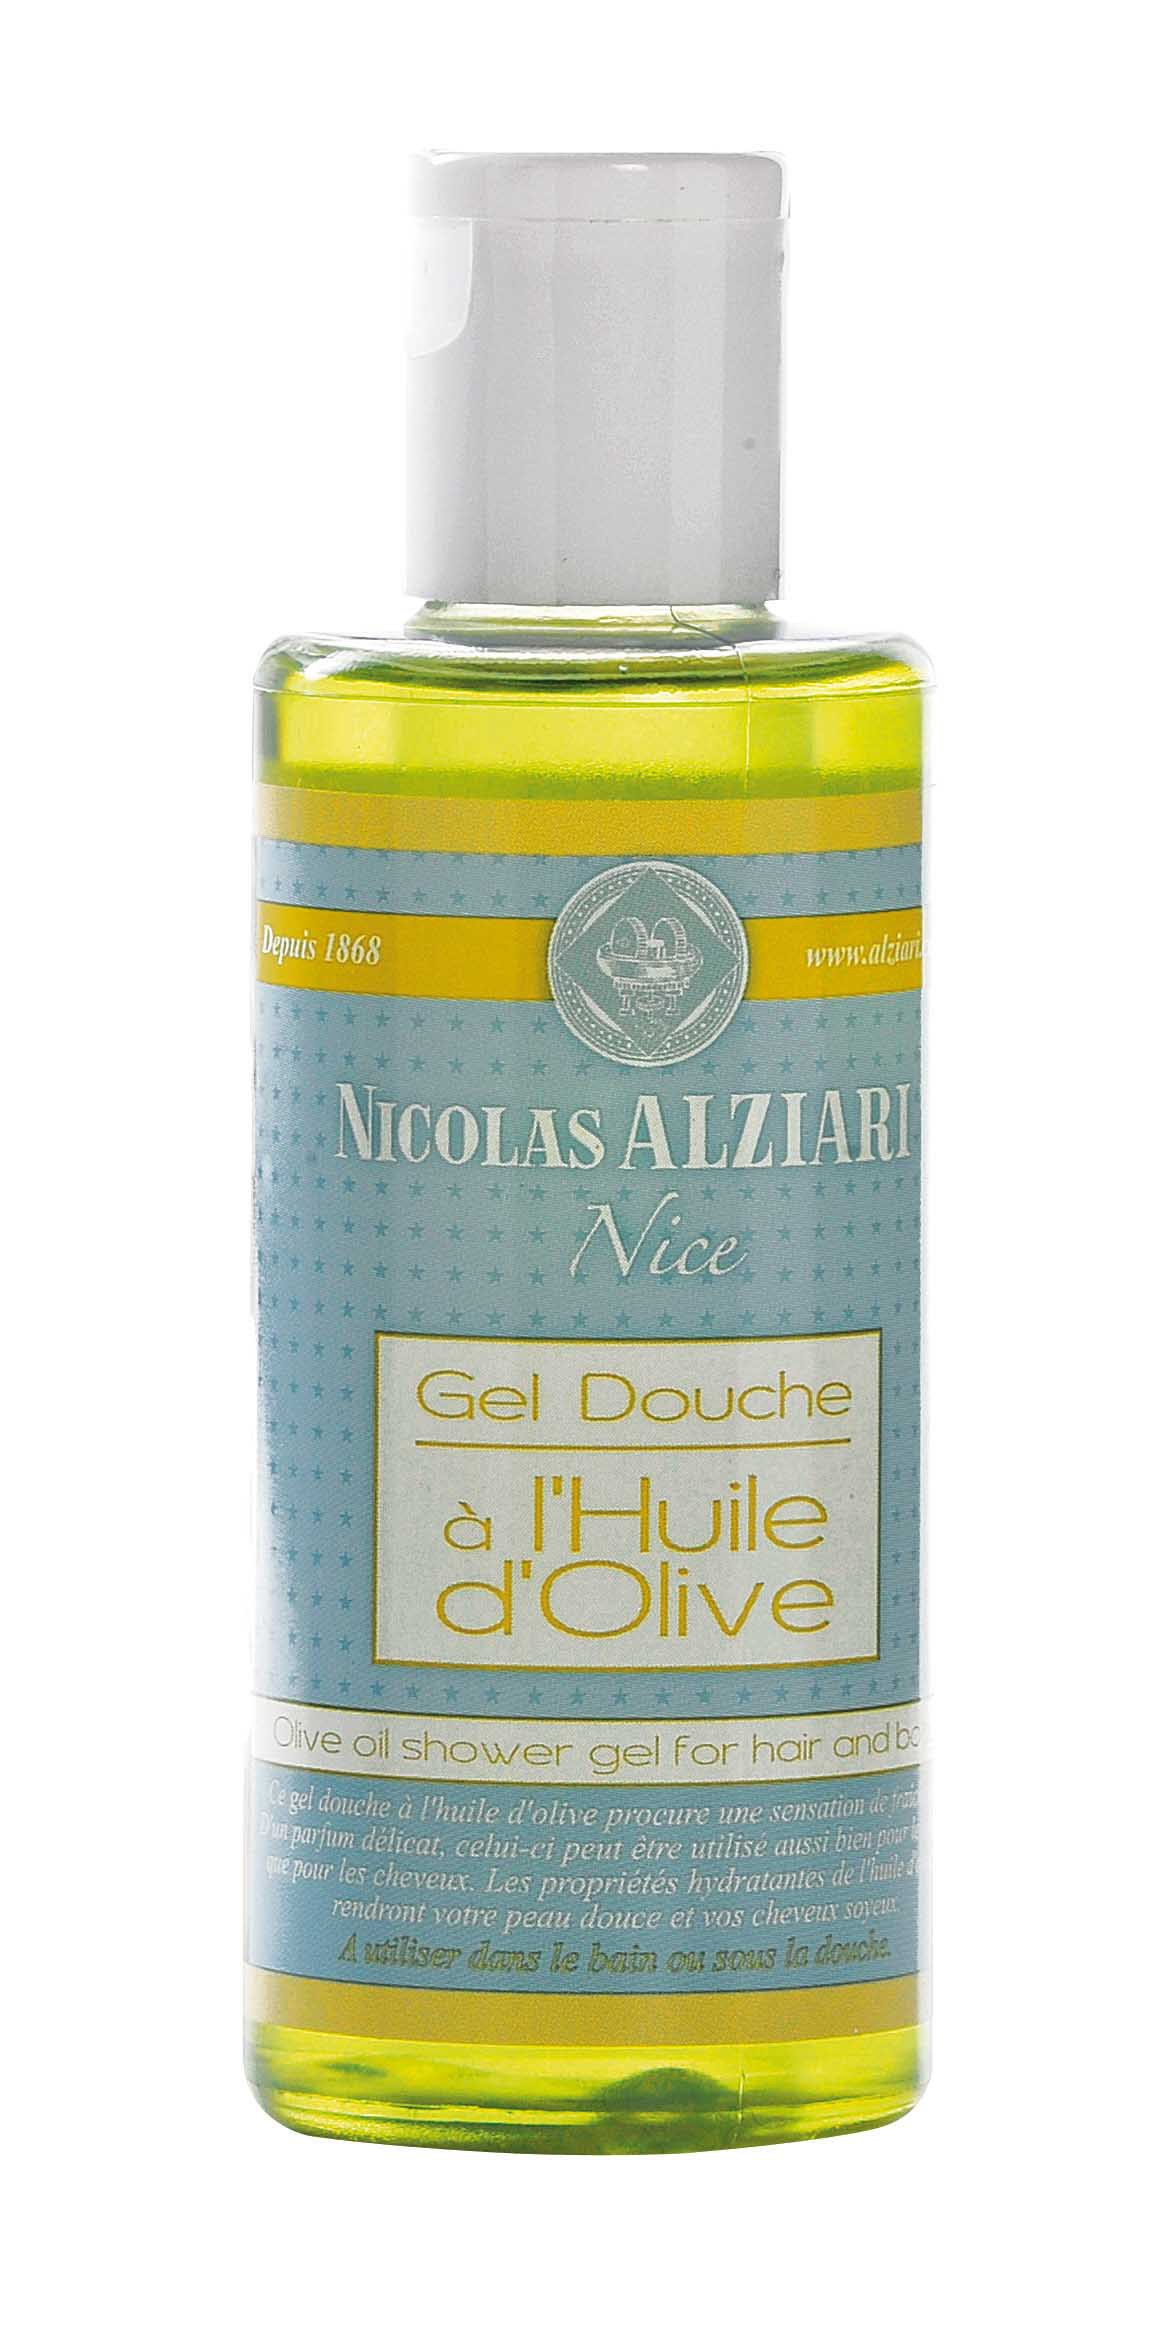 Olive oil shower gel 200ml